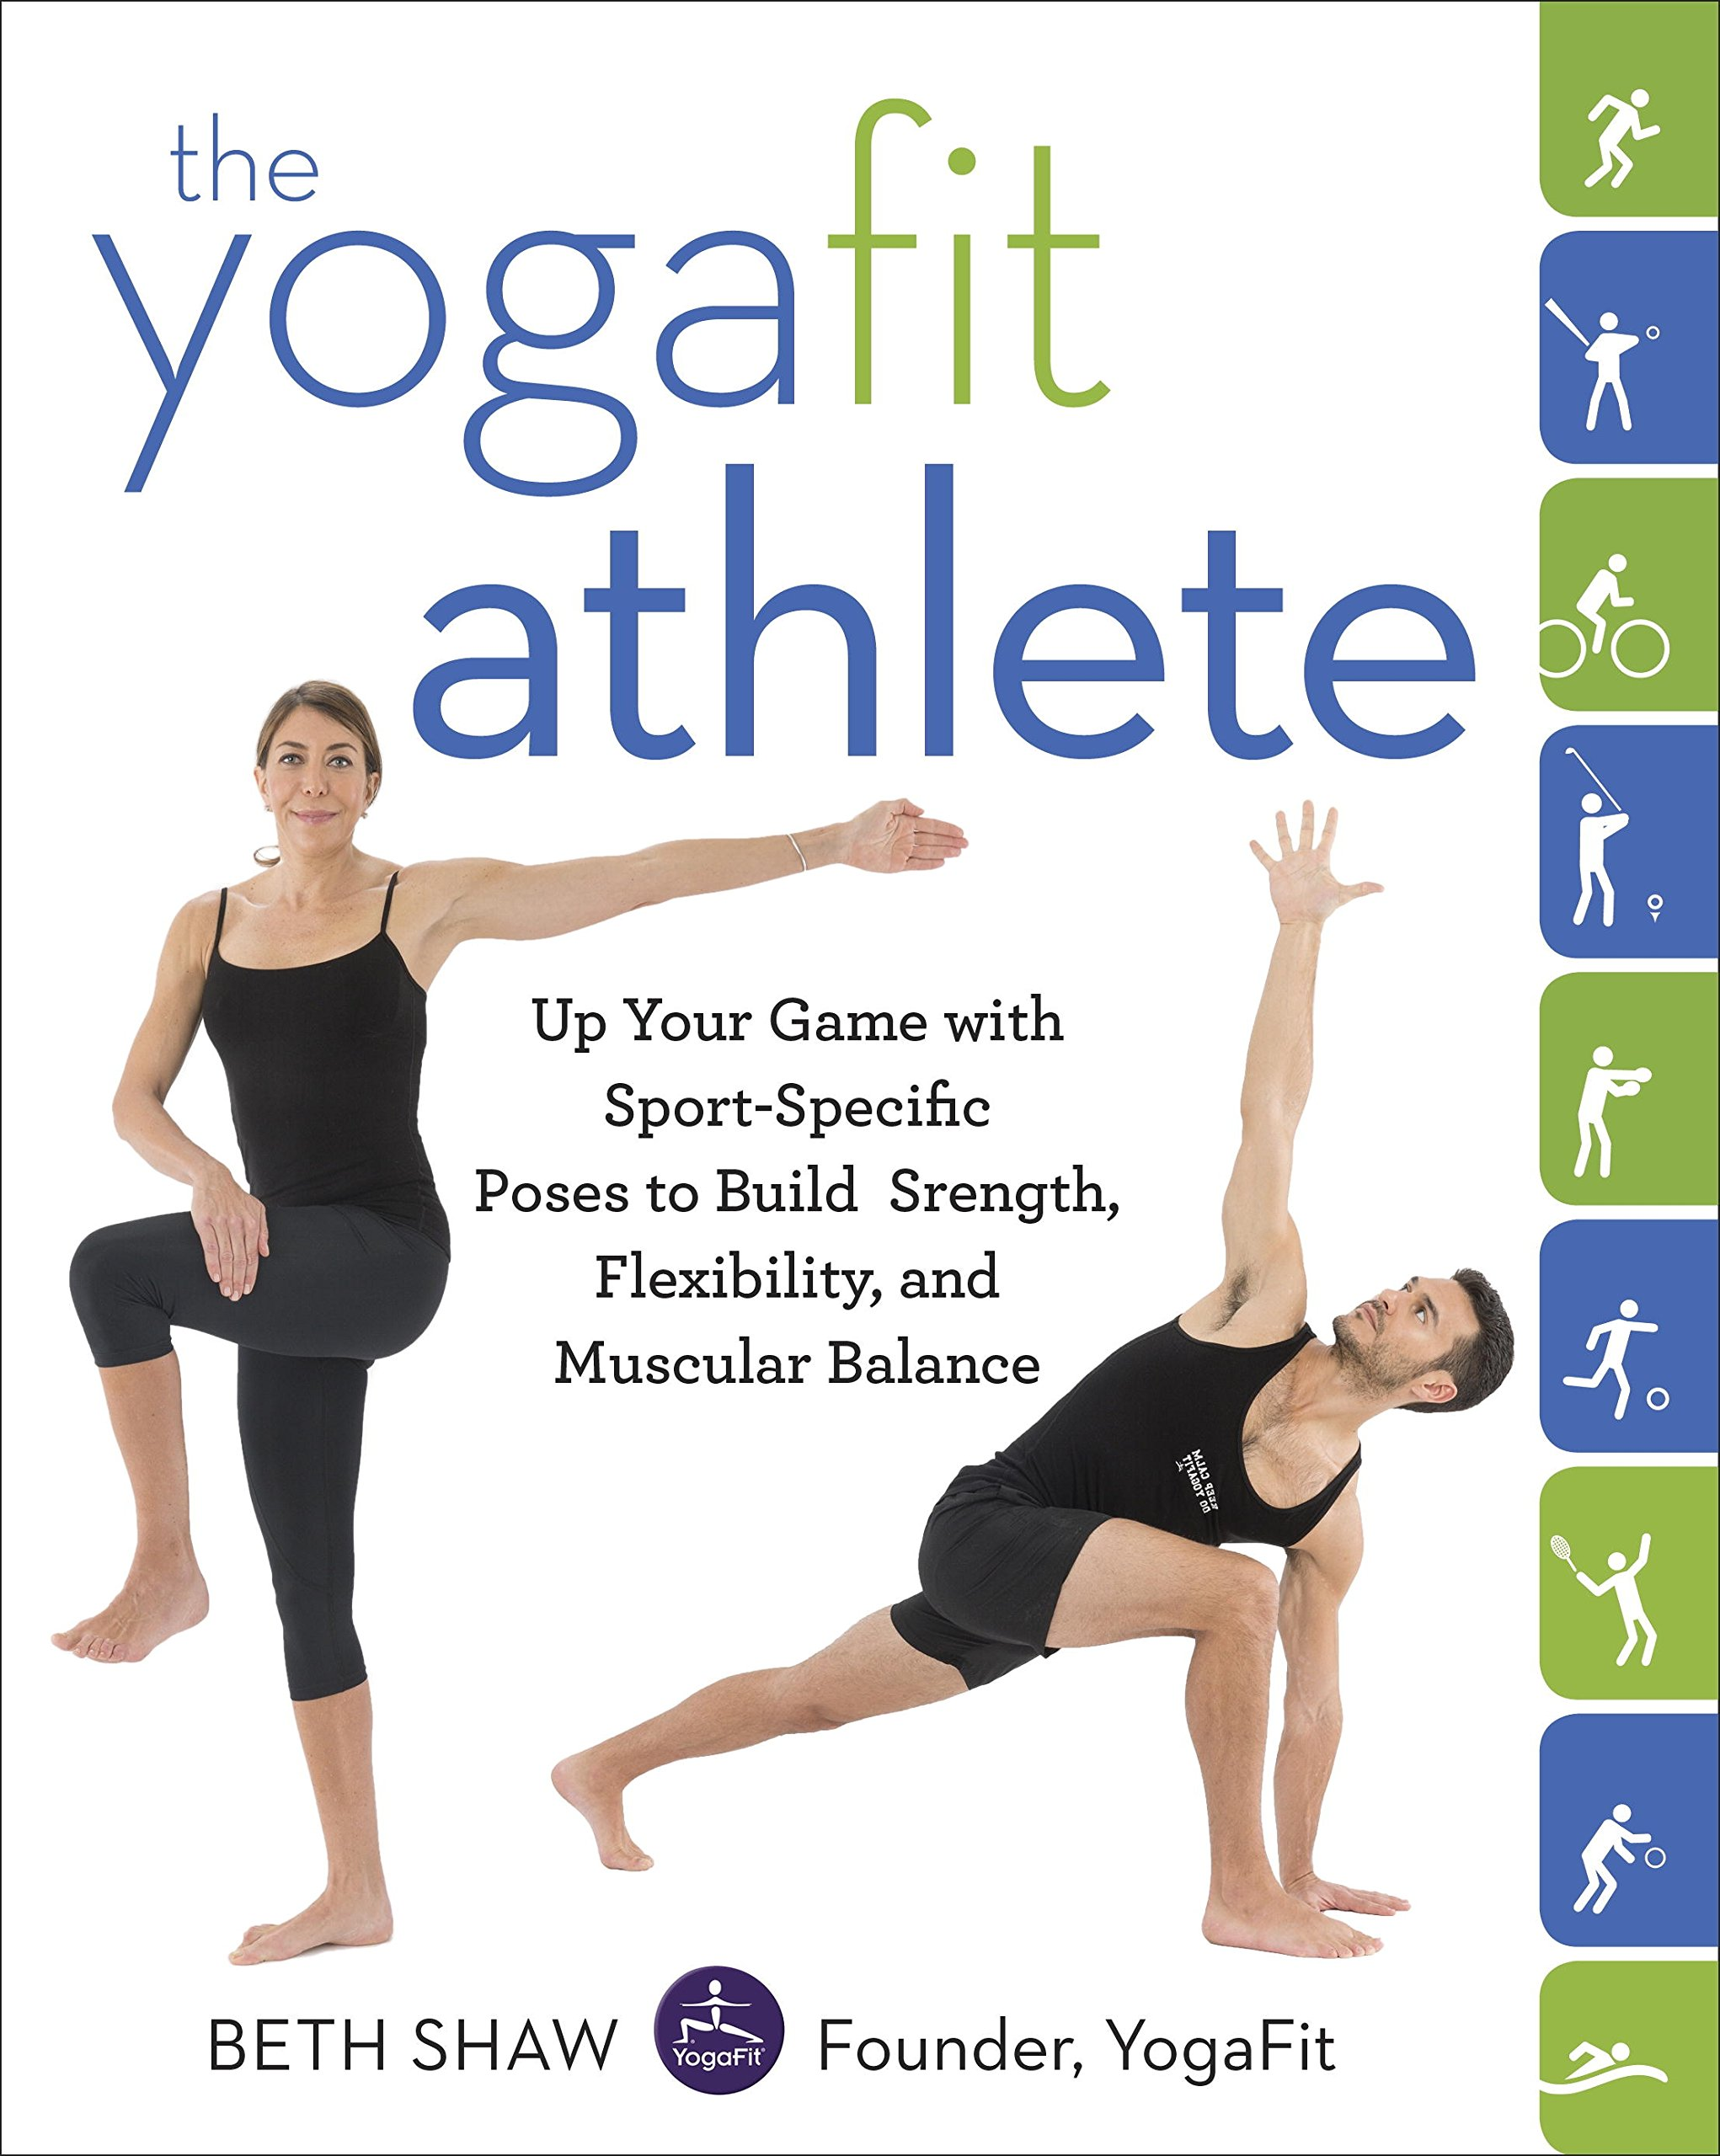 The YogaFit Athlete: Up Your Game with Sport-Specific Poses to